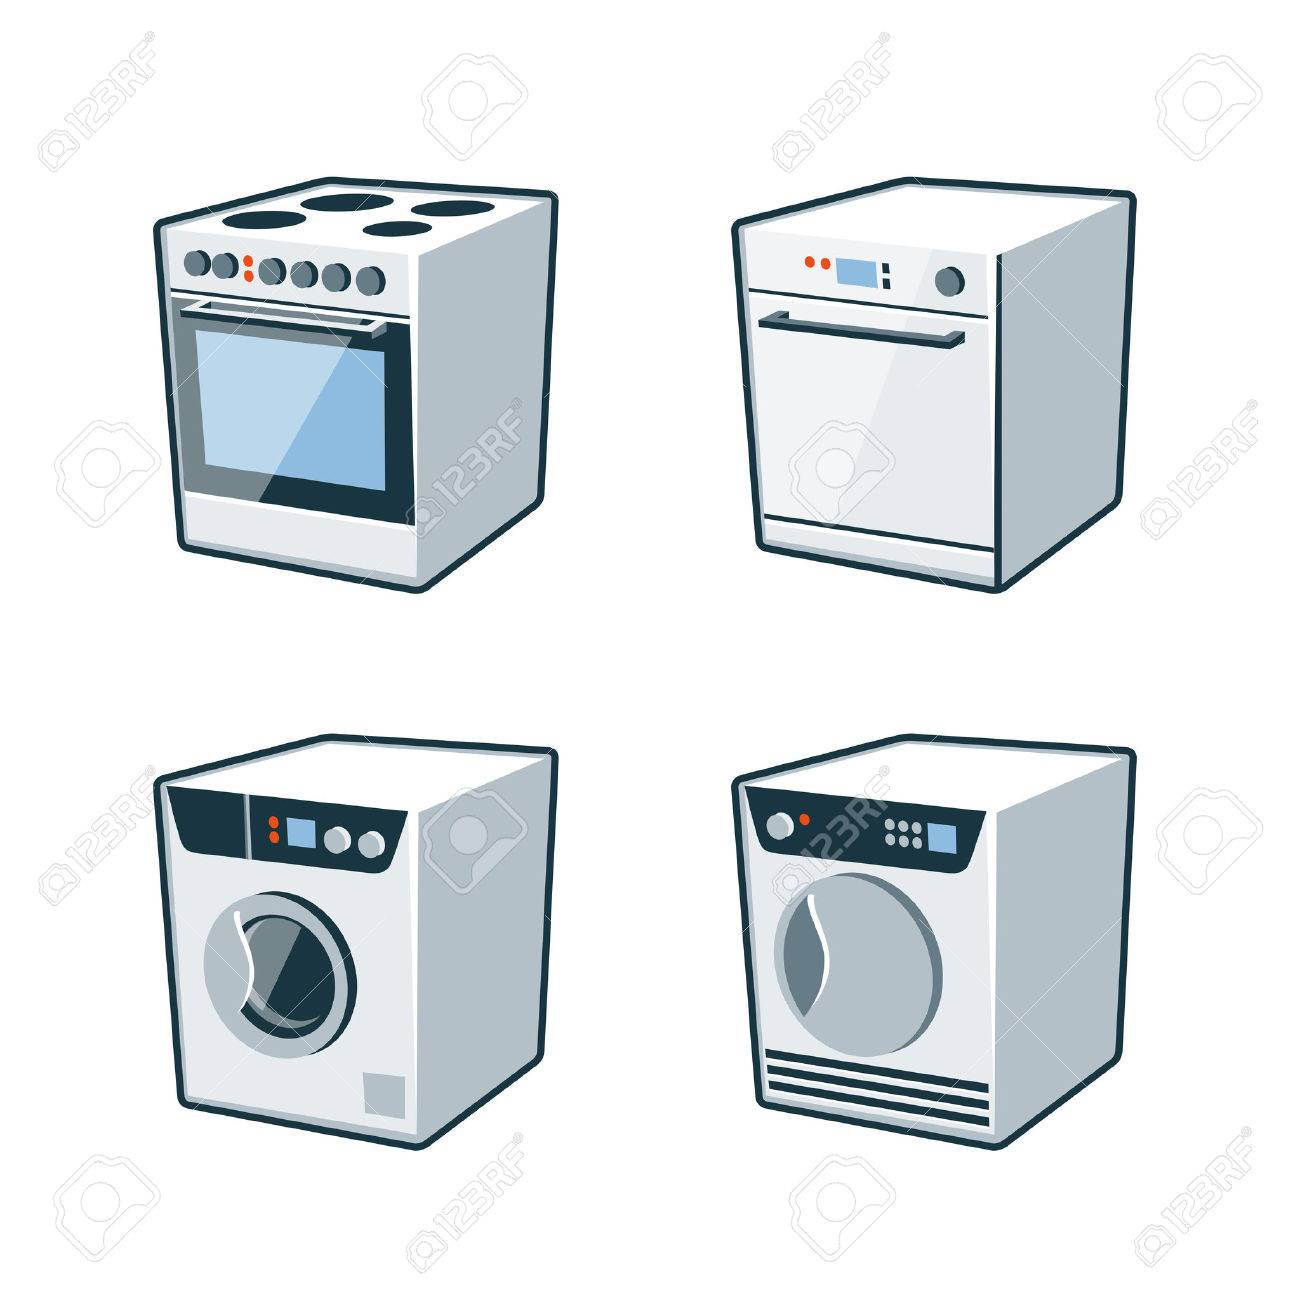 Washer And Dryer Clipart set of four vector icons of an oven cooker, dishwasher, washing